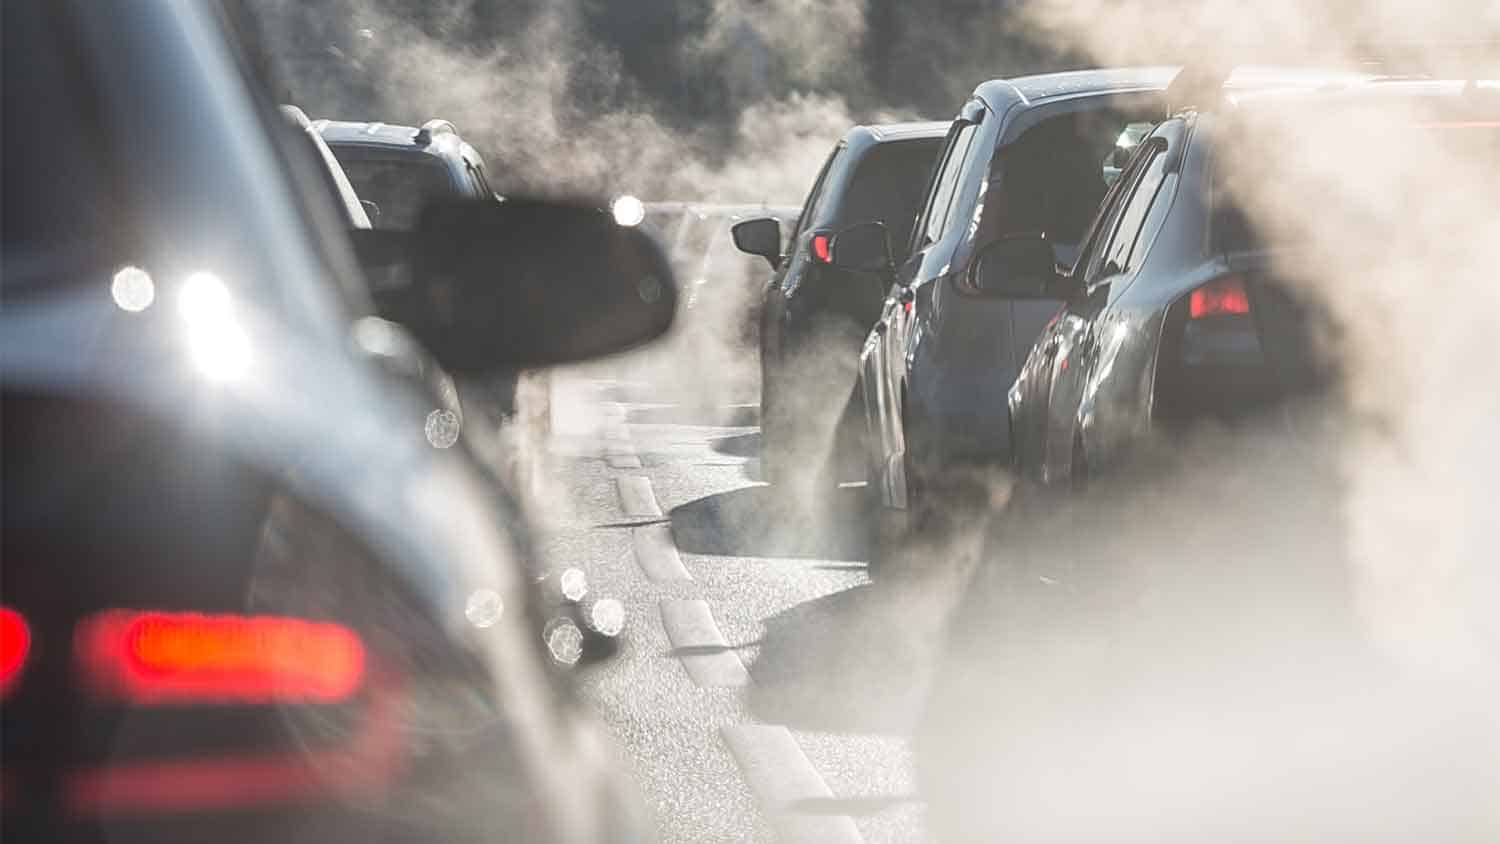 Cars and visible exhaust fumes